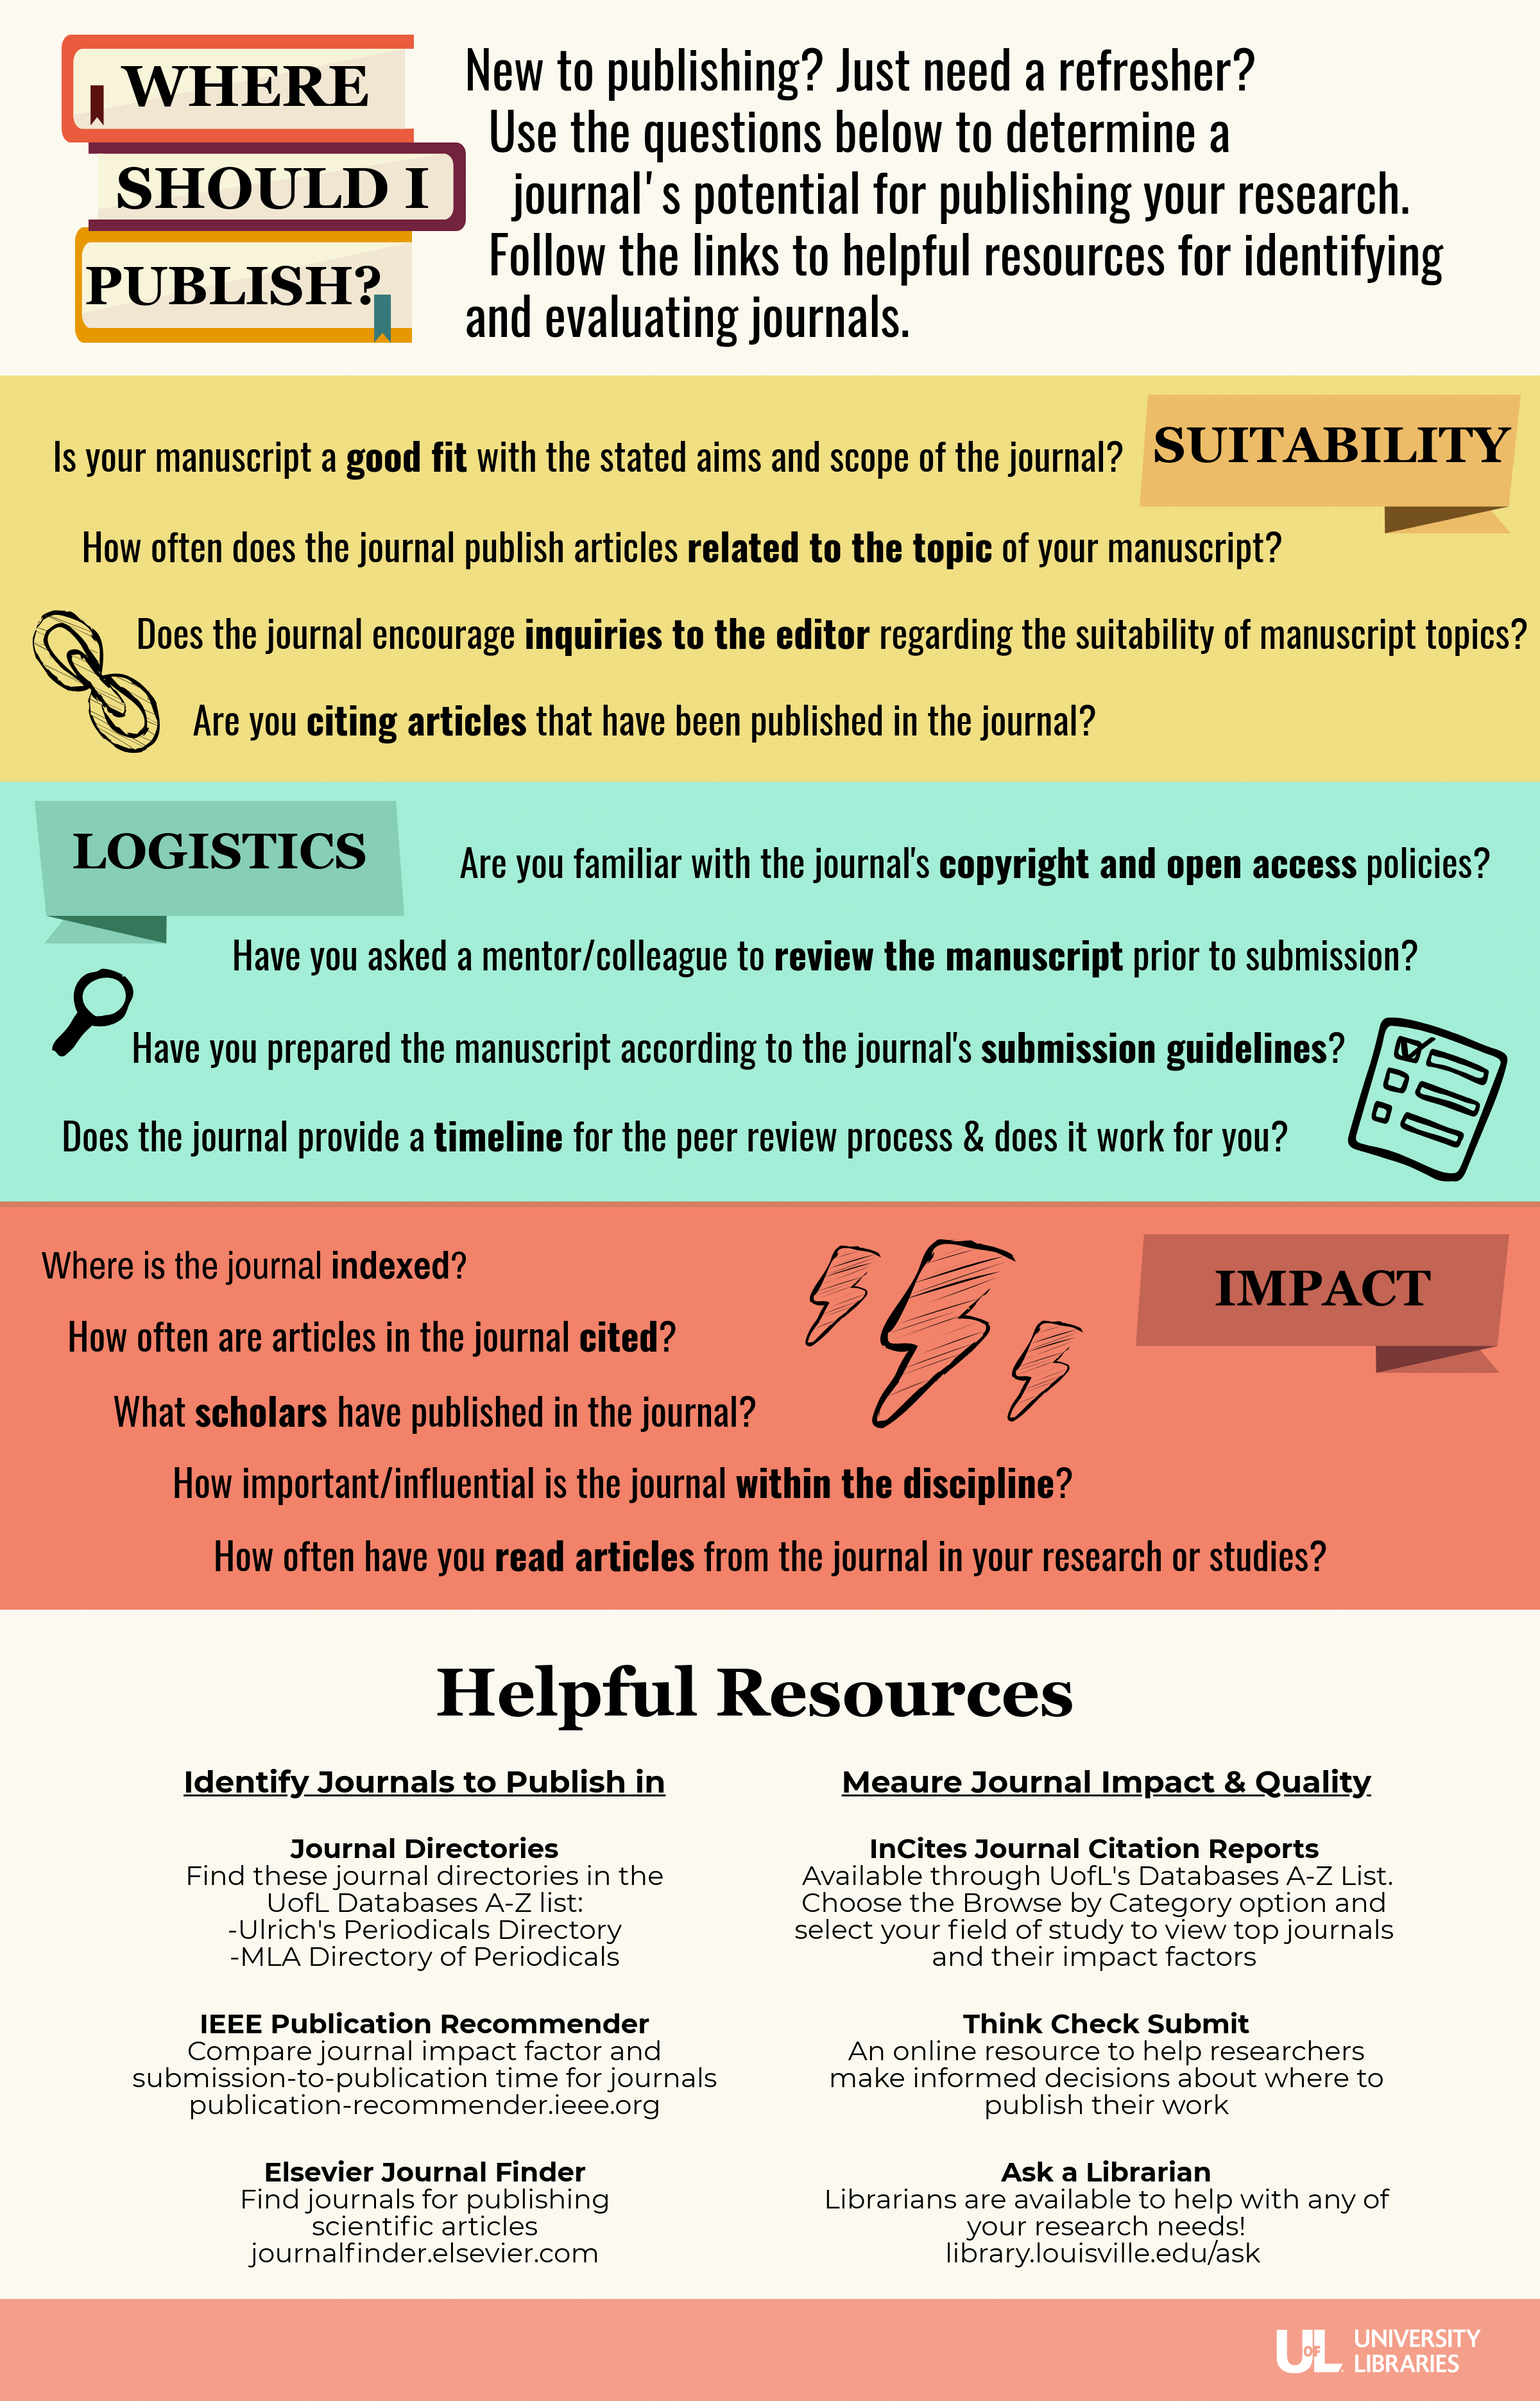 New to publishing? Just need a refresher? Use the questions below to determine a journal's potential for publishing your research. Follow the links to helpful resources for identifying and evaluating journals.Suitability: Is your manuscript a good fit with the stated aims and scope of the journal? How often does the journal publish articles related to the topic of your manuscript? Does the journal encourage inquiries to the editor regarding the suitability of manuscript topics? Are you citing articles that have been published in the journal?Logistics: Are you familiar with the journal's copyright and open access policies? Have you asked a mentor/colleague to review the manuscript prior to submission? Have you prepared the manuscript according to the journal's submission guidelines? Does the journal provide a timeline for the peer review process and does it work for you?Impact: Where is the journal indexed? How often are articles in the journal cited? What scholars have published in the journal? How important/influential is the journal within the discipline? How often have you read articles from the journal in your research or studies?Helpful resources for identifying journals to publish in: Journal Directories like Ulrich's Periodicals Directory and MLADirectory of Periodicals can be found in the UofL Databases A-Z List. IEEE Publication Recommender can be found at publication-recommender.ieee.org and compares journal impact factor and submission-to-publication time for journals. Elsevier Journal Findercan be found at journalfinder.elsevier.com and helps find journals for publishing scientific articles.Helpful resources for measuring journal impact and quality: Incites Journal Citation Reports is available through UofL library's Databases A-Z List. Choose the Browse by Category option and select your field of study to view top journals and their impact factor. Think Check Submit is an online resource to help researchers make informed decisions about where to publish their work. Librarians are available to help with any of your research needs at library.louisville.edu/ask.